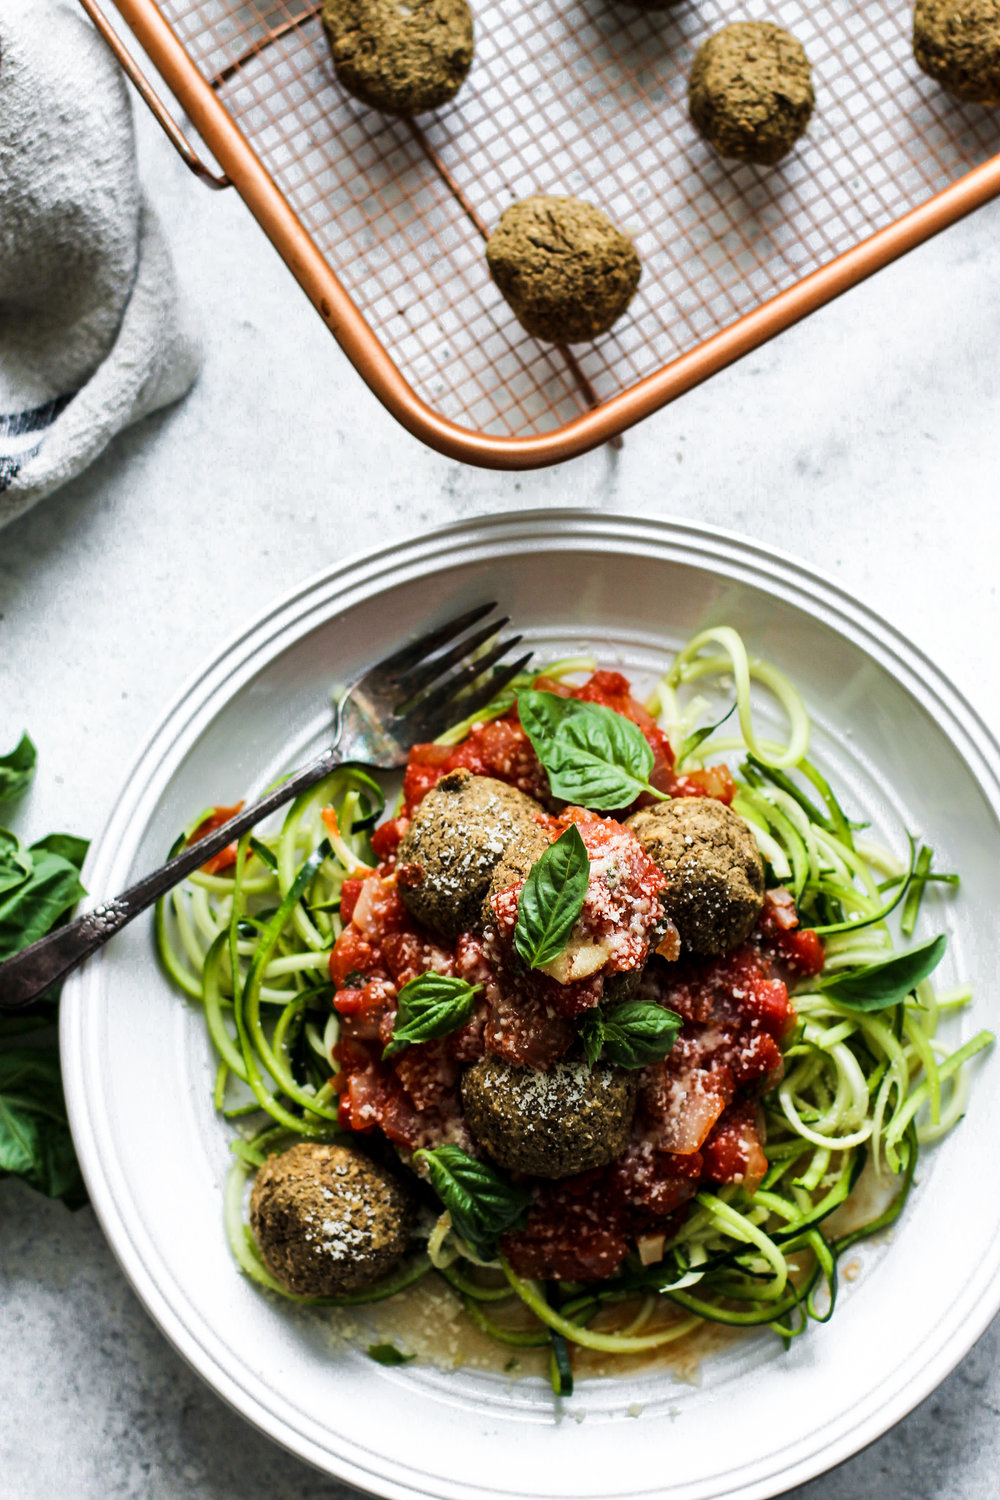 Easy Lentil Meatballs with Homemade Marinara: My Diary of Us